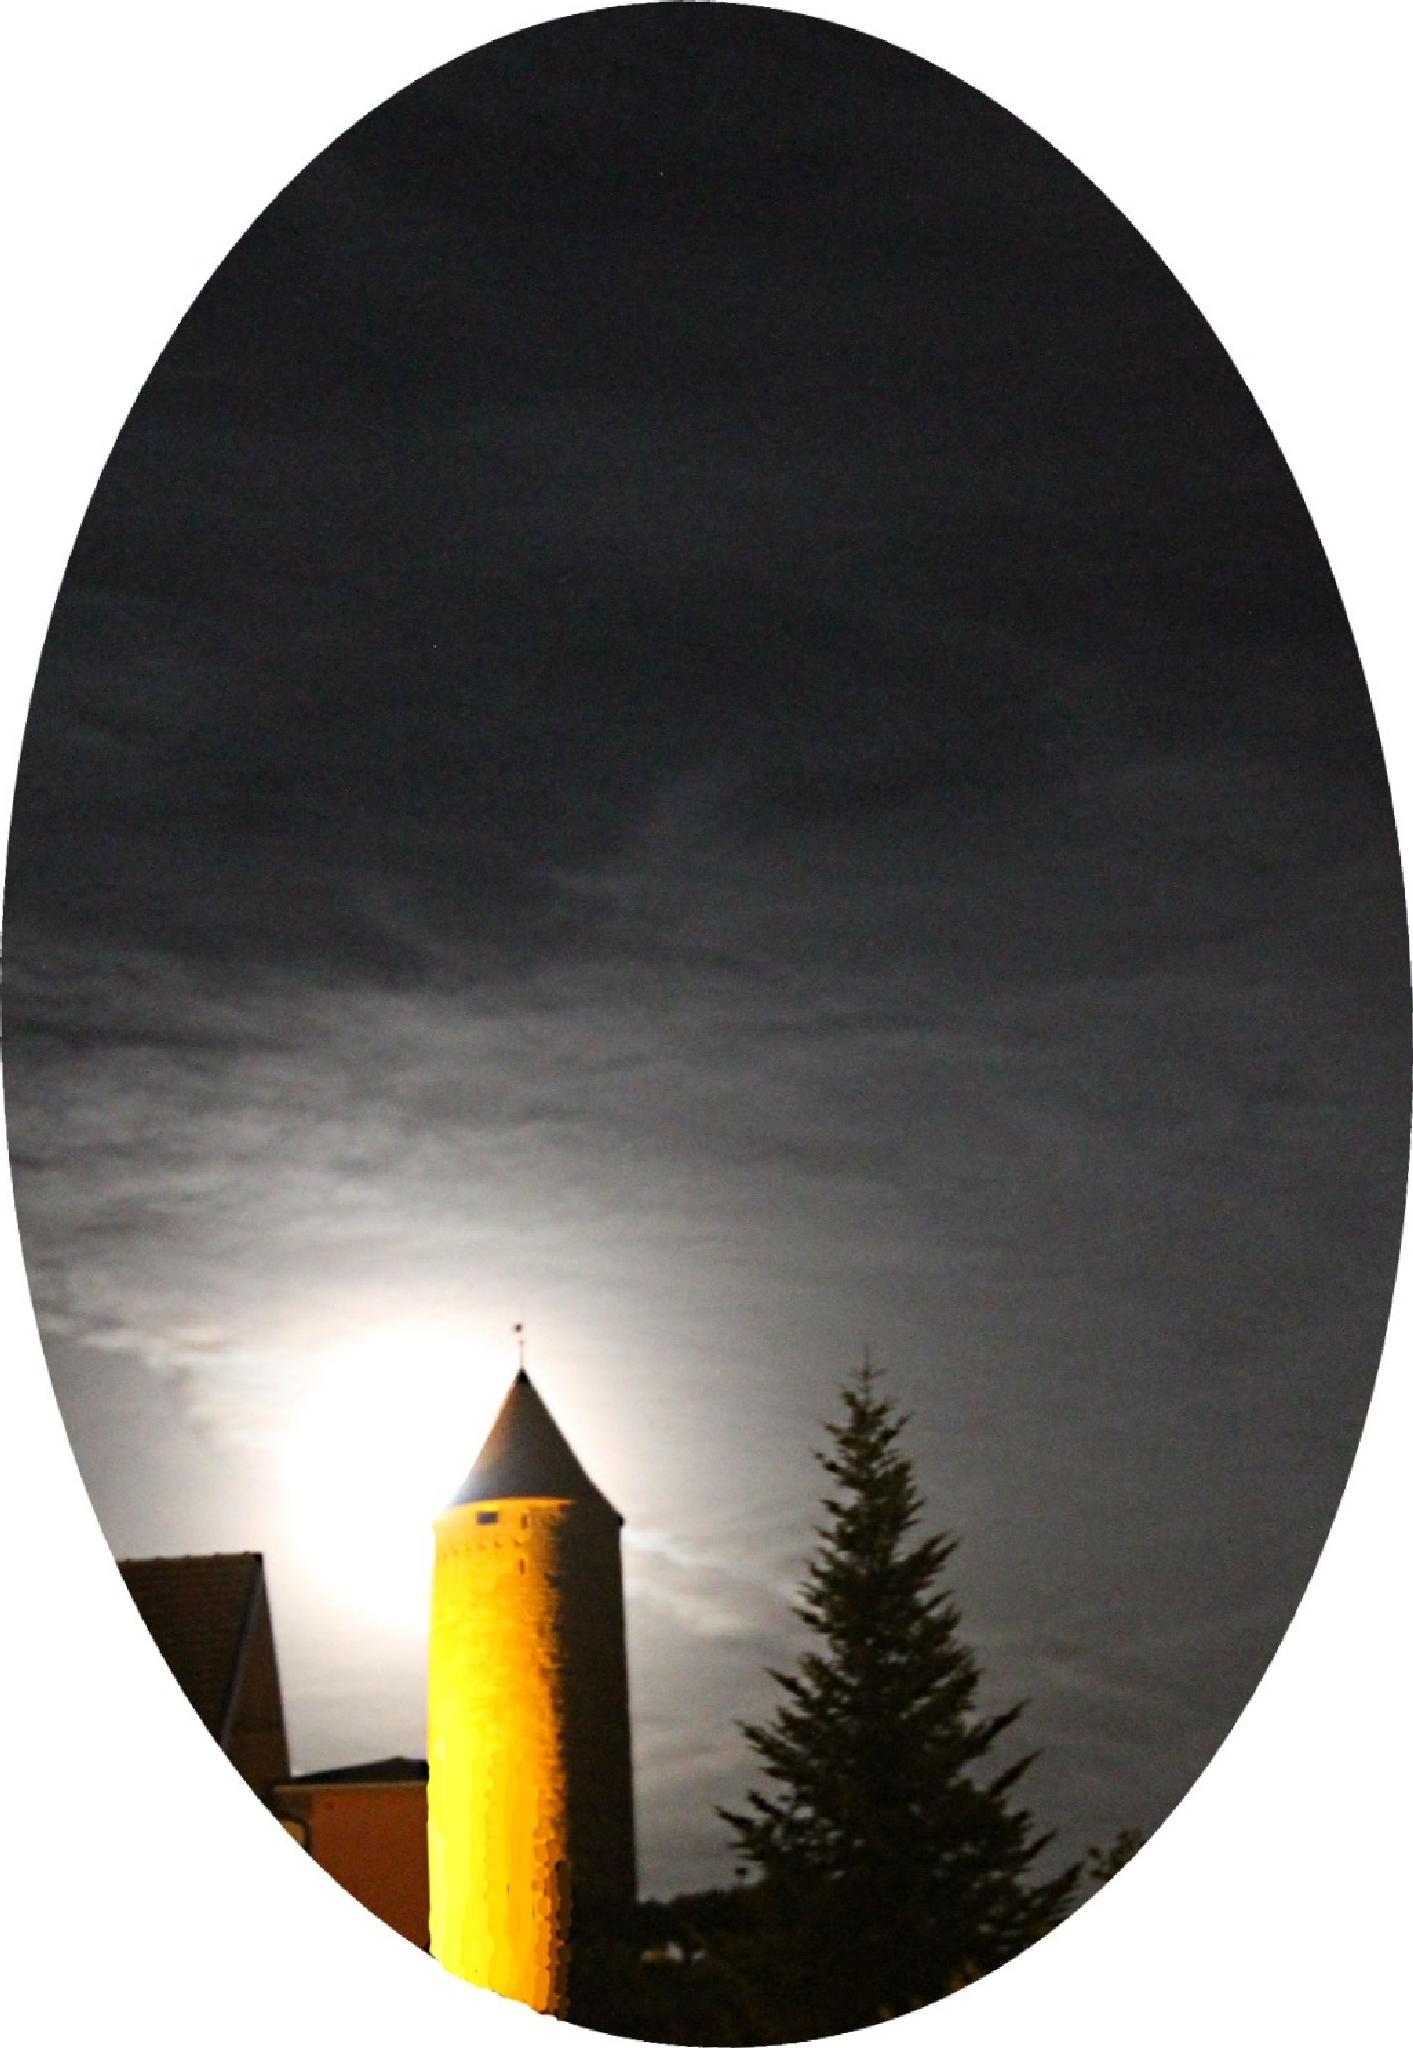 Romont, Switzerland! Medieval tower at night! by Andre RAMSEYER